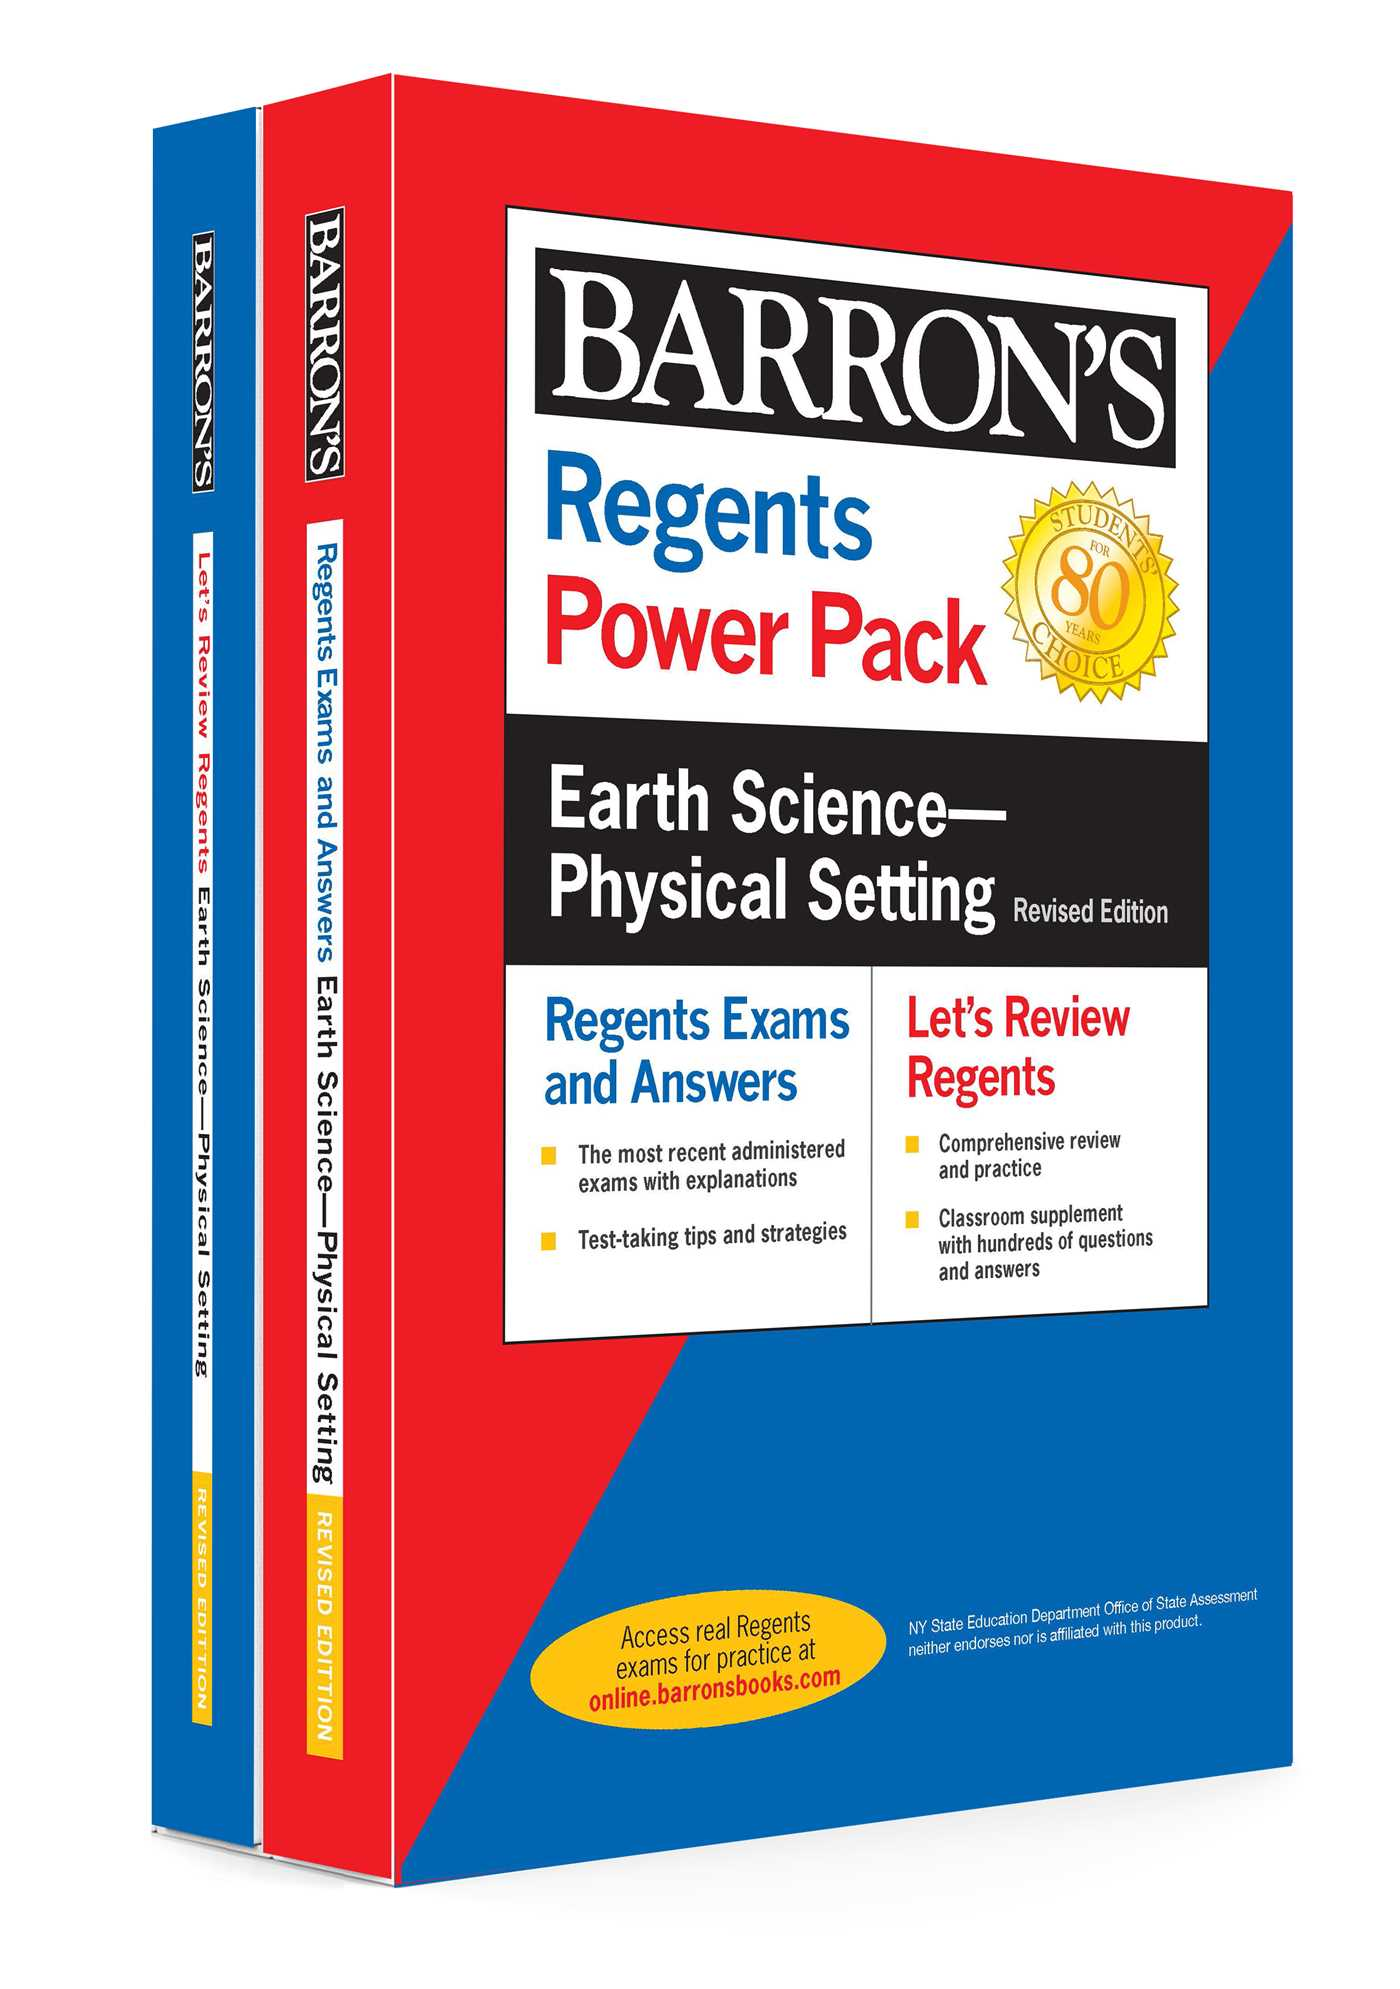 Regents Earth Science--Physical Setting Power Pack Revised Edition